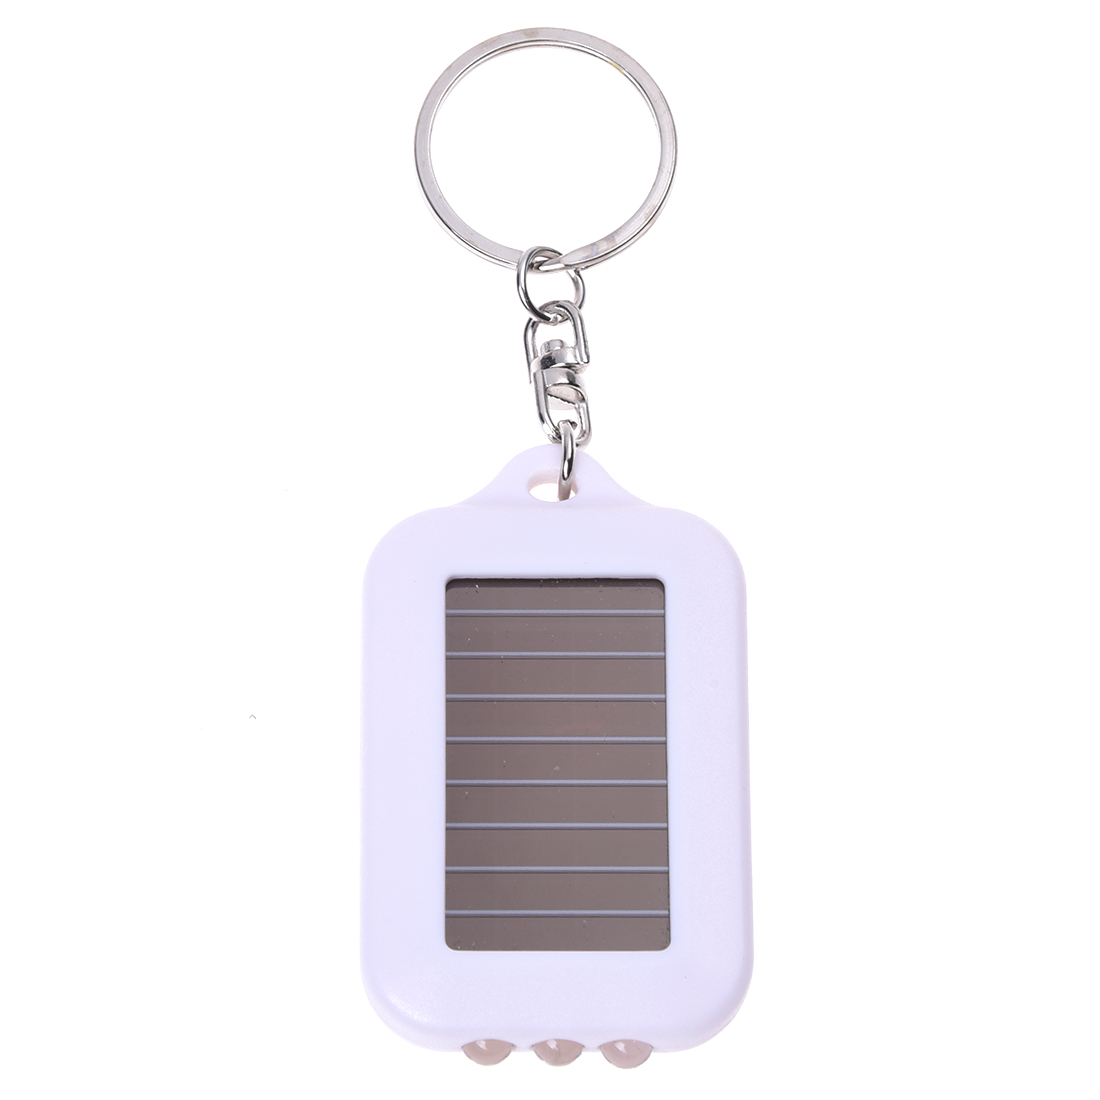 10X Mini Solar Power Rechargeable 3LED Flashlight Keychain Light Torch Ring New - white(China (Mainland))